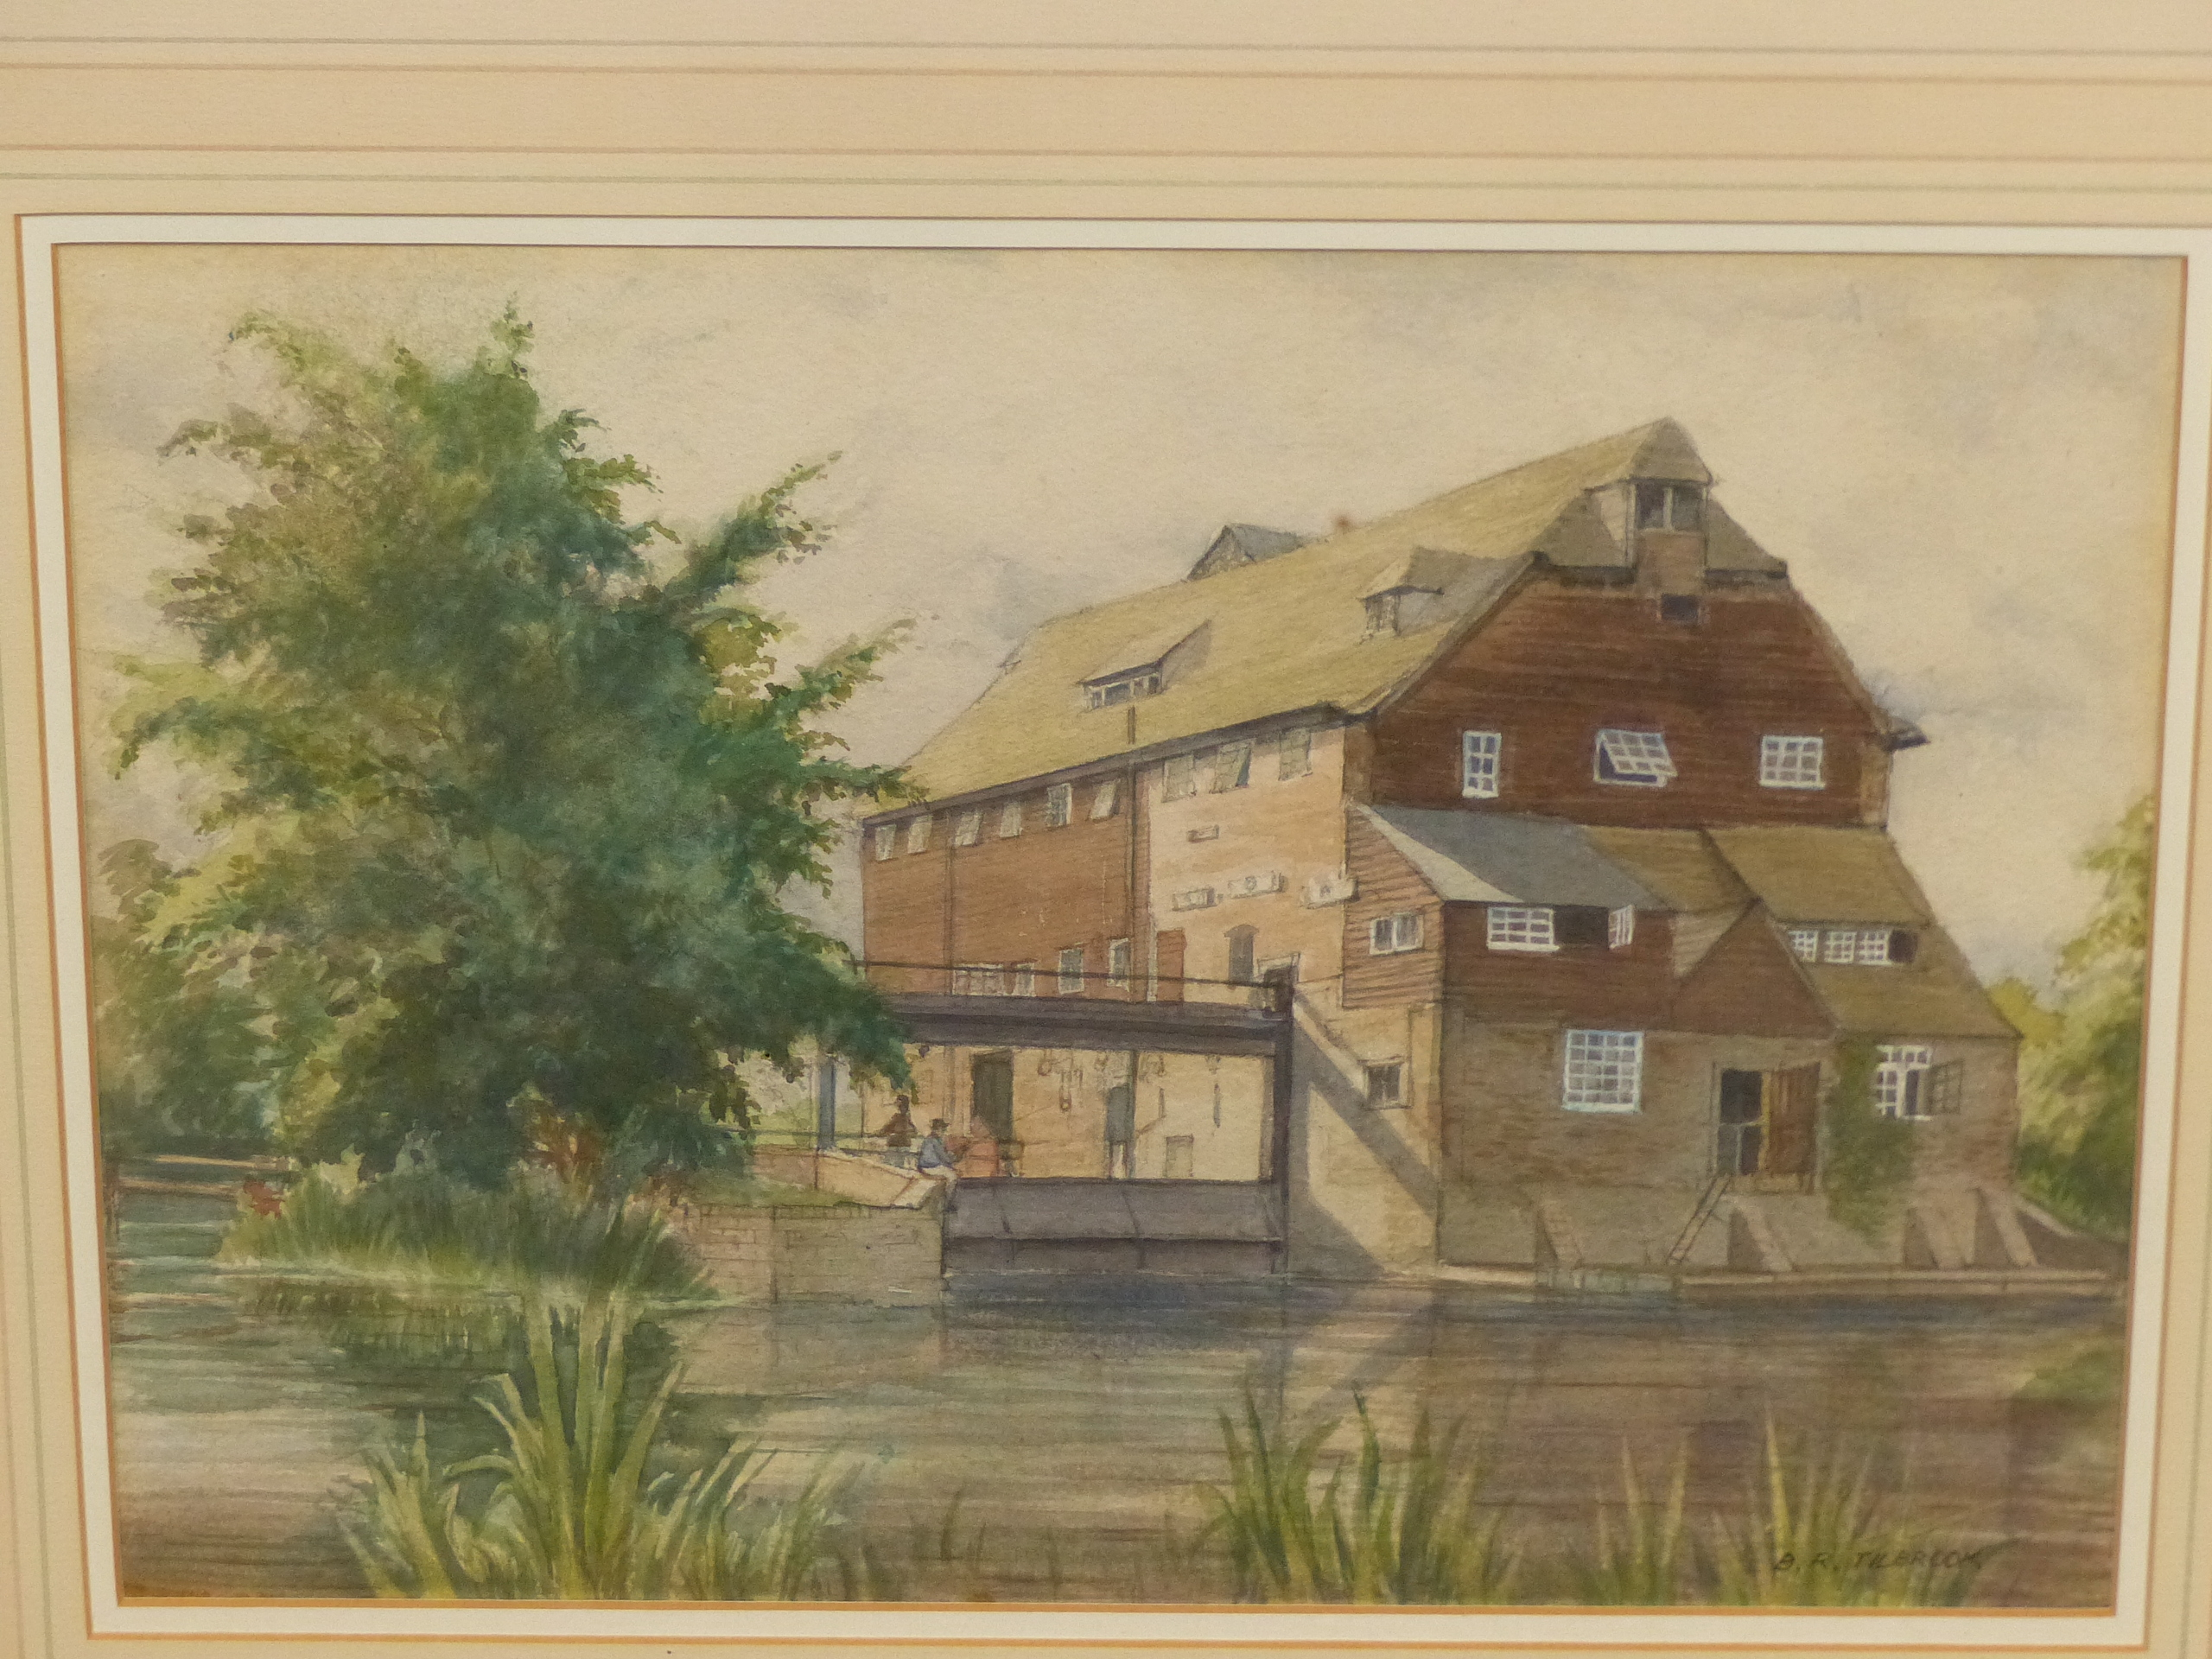 B.R TILBROOK (20th CENTURY SCHOOL). THE OLD MILL. SIGNED, WATERCOLOUR 23 x 32cms.